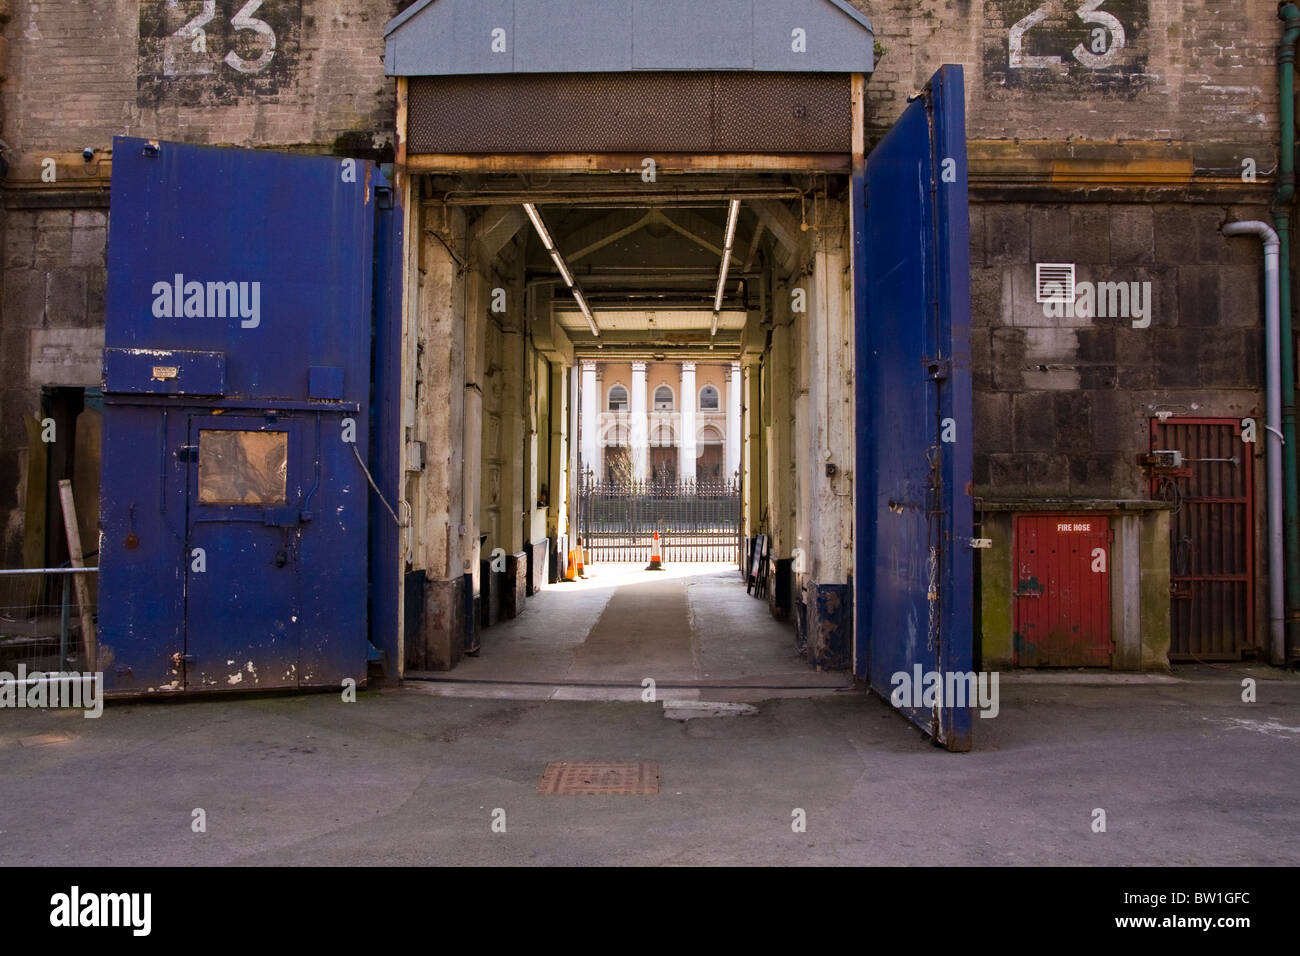 Inner doors of Crumlin Road jail in Belfast looking out to the Crumlin Road courthouse & Inner doors of Crumlin Road jail in Belfast looking out to the ... Pezcame.Com